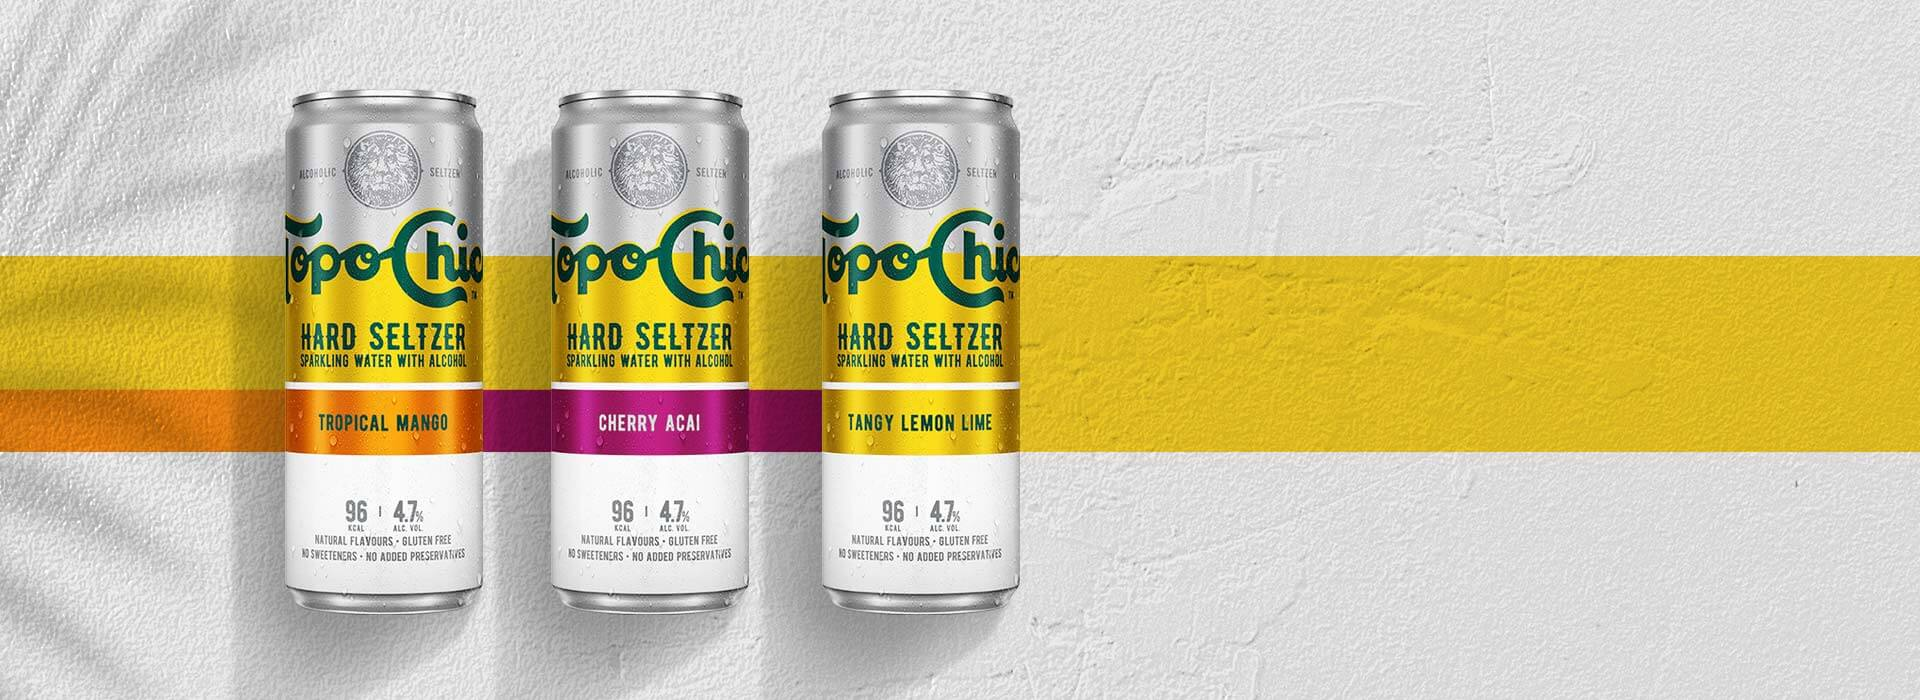 Three cans of Topo Chico